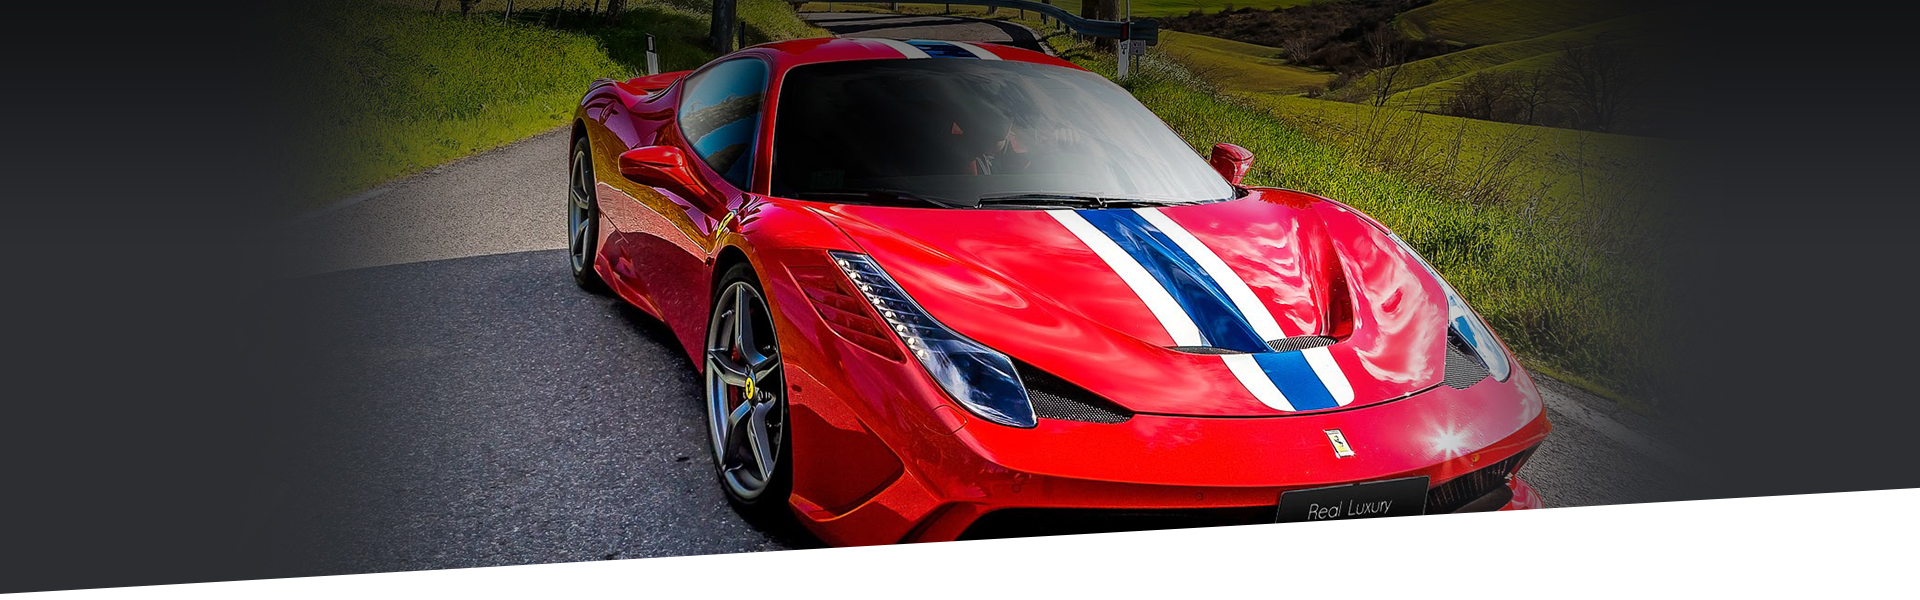 intes-supercar-about